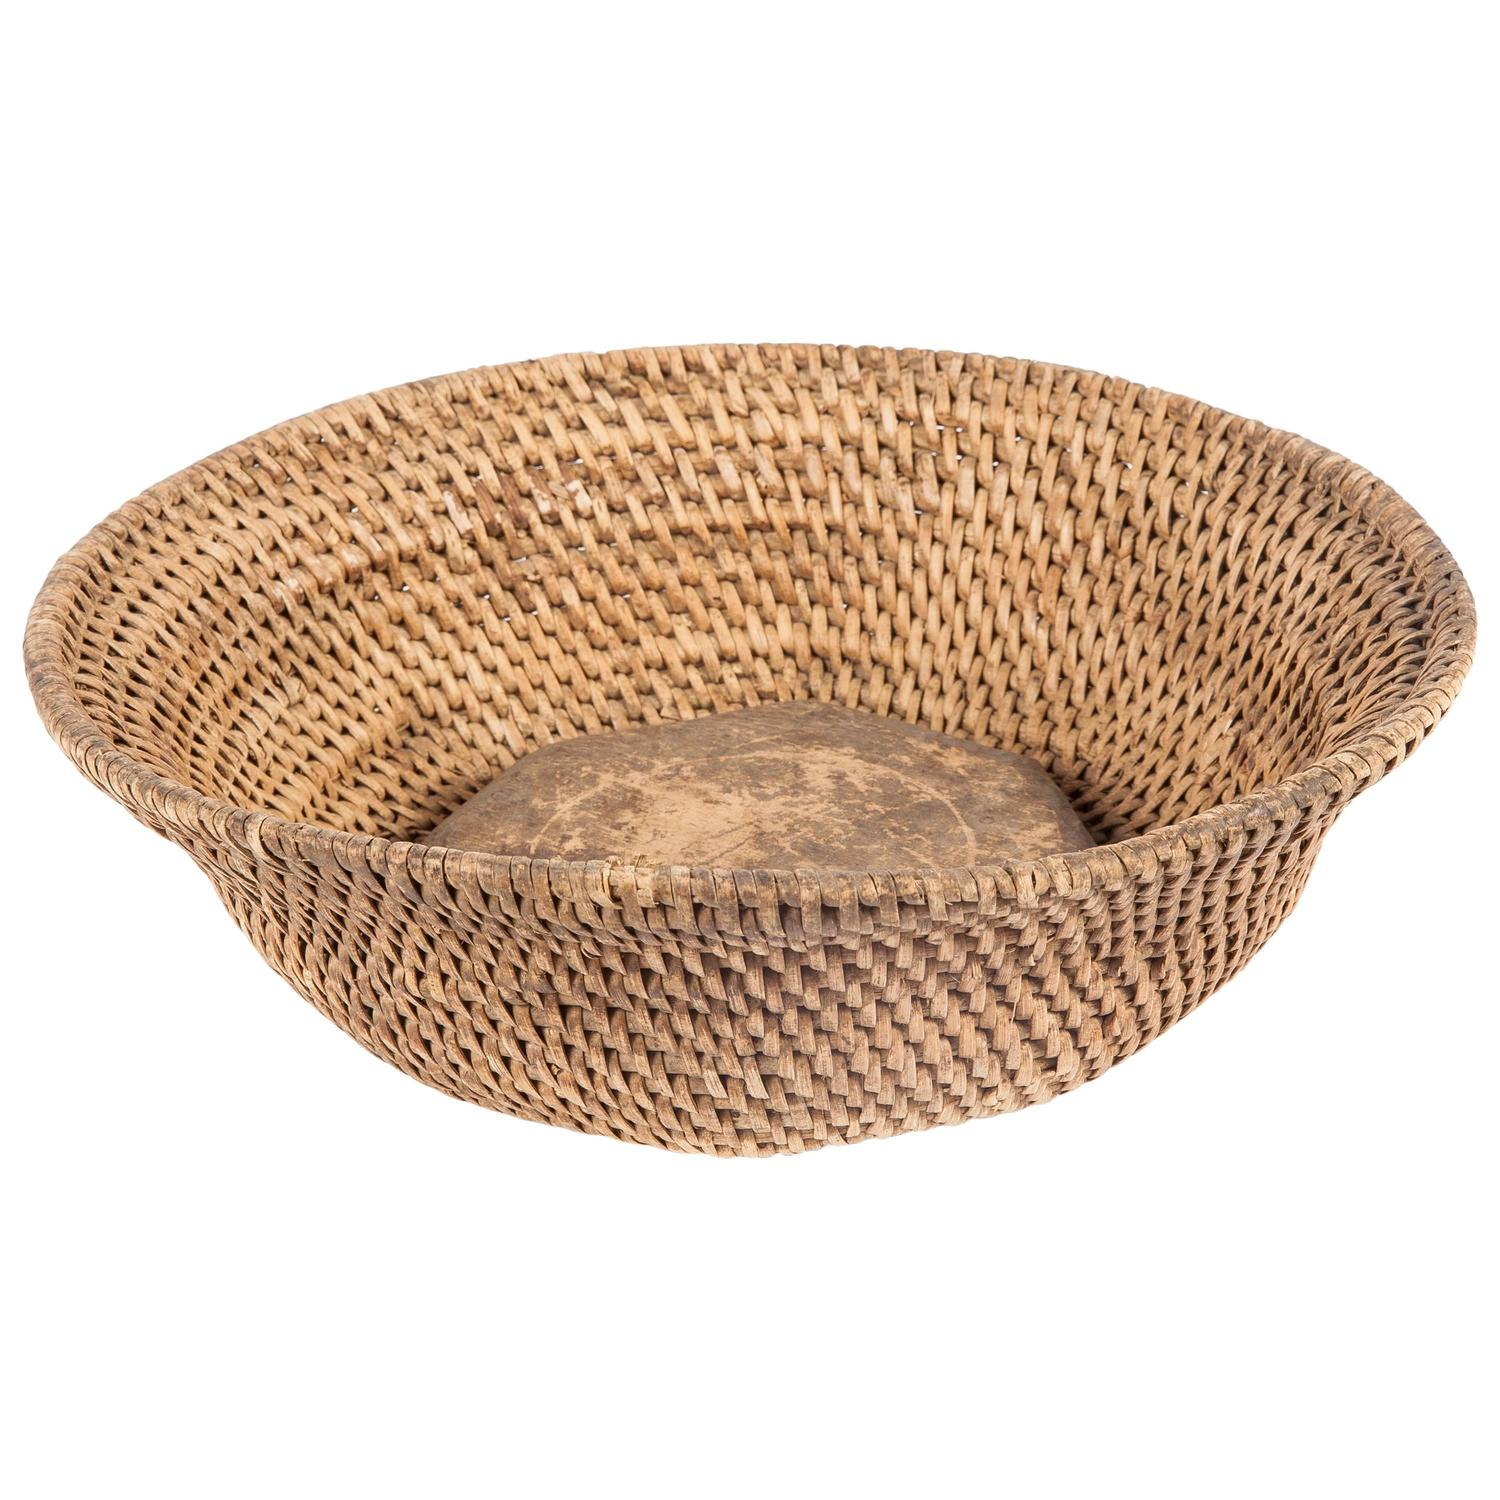 Wicker Bowl Chair Rattan Bowl With Wood Internal Bottom From Southern India